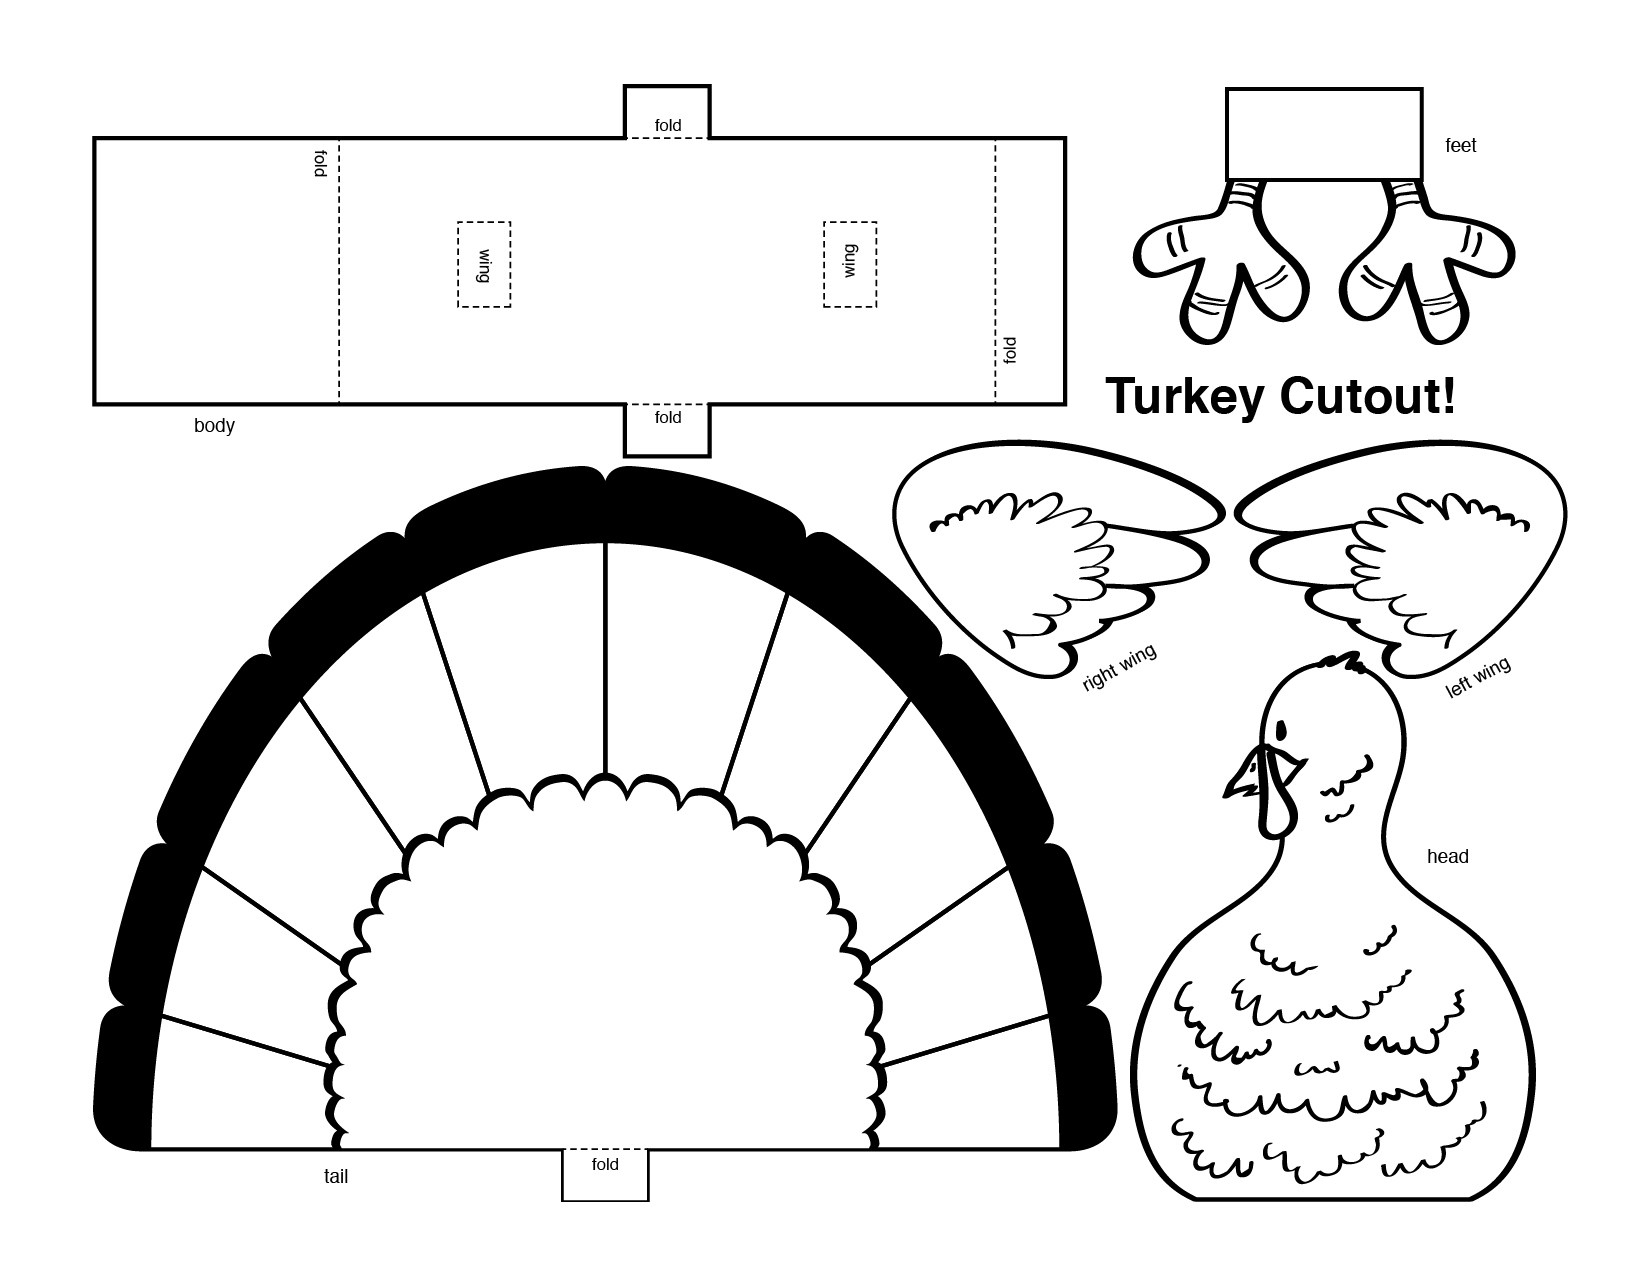 Free Turkey Template Cut Out - Natashamillerweb - Free Turkey Cut Out Printable